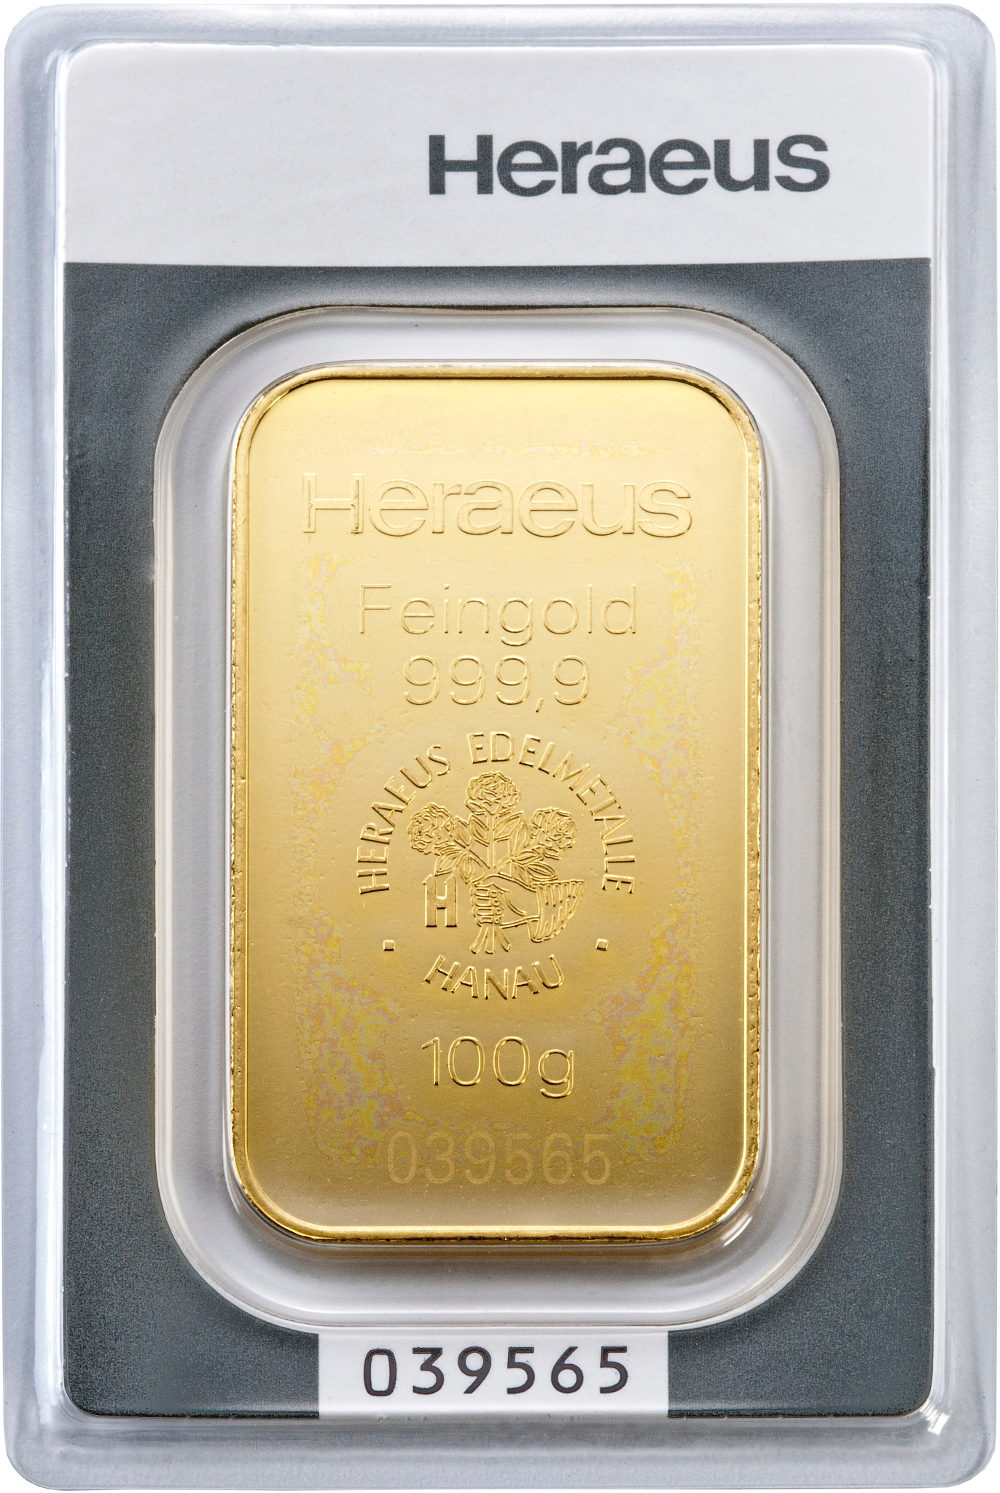 100g Heraeus Gold Bullion Bars Bullionbypost From 163 3 222